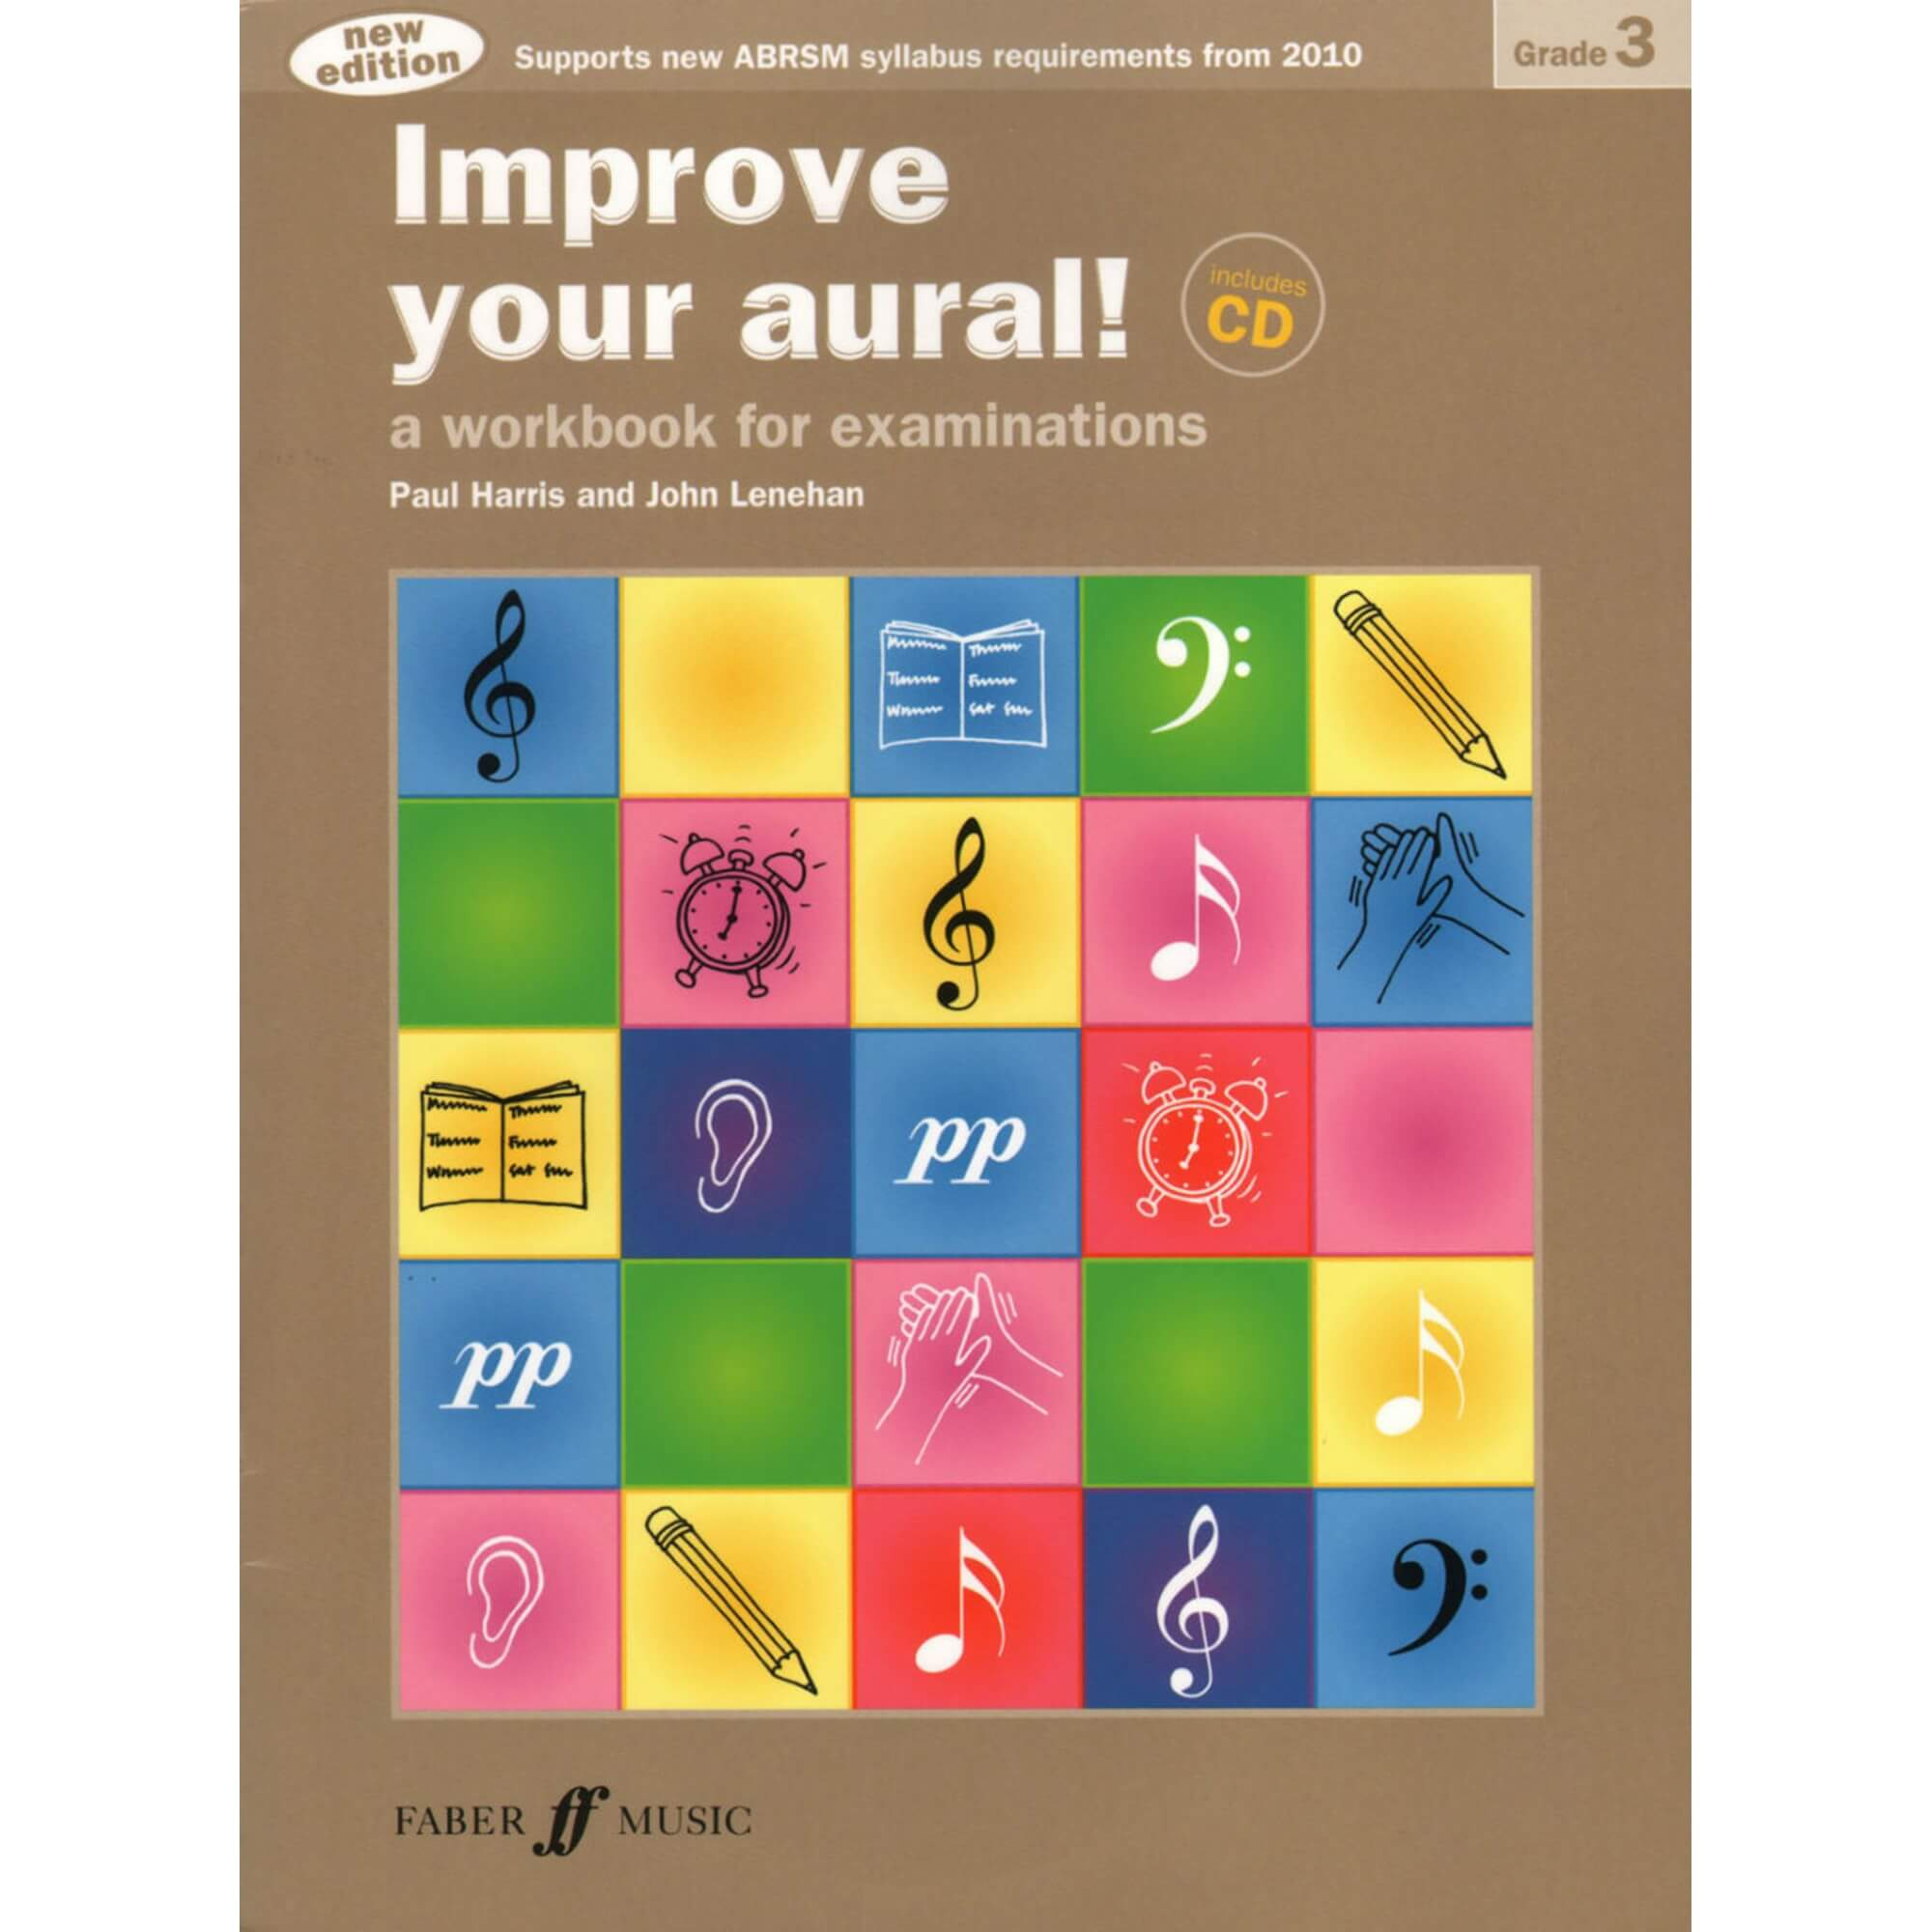 Improve your aural! Grade 3